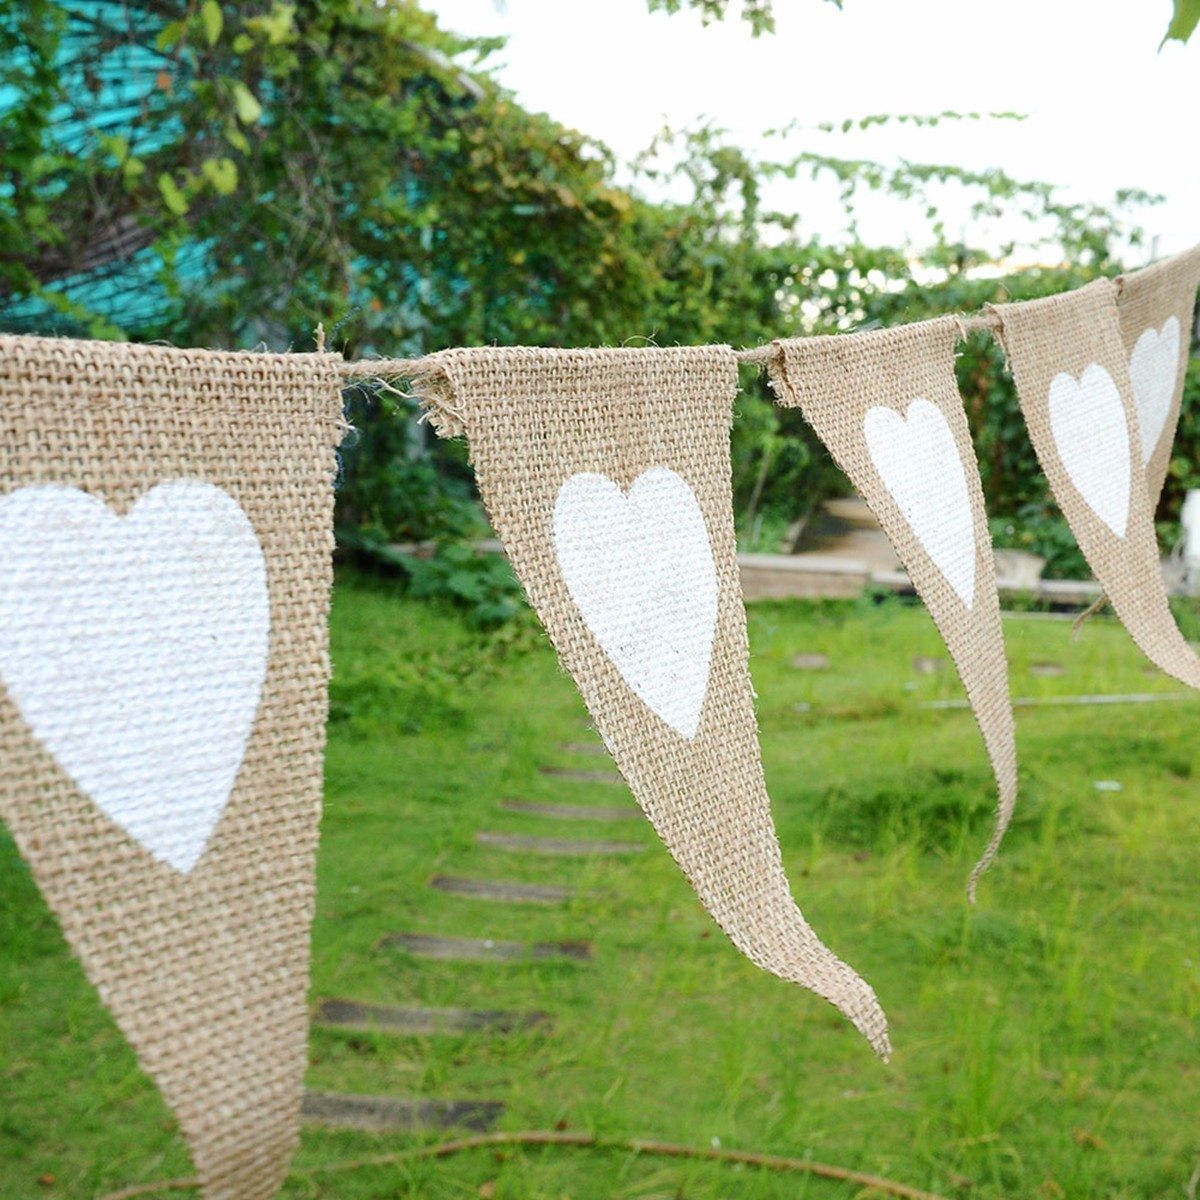 Heart Lace Pattern Hessian Burlap Fabric Rustic Wedding Banner Bunting Vintage Decoration